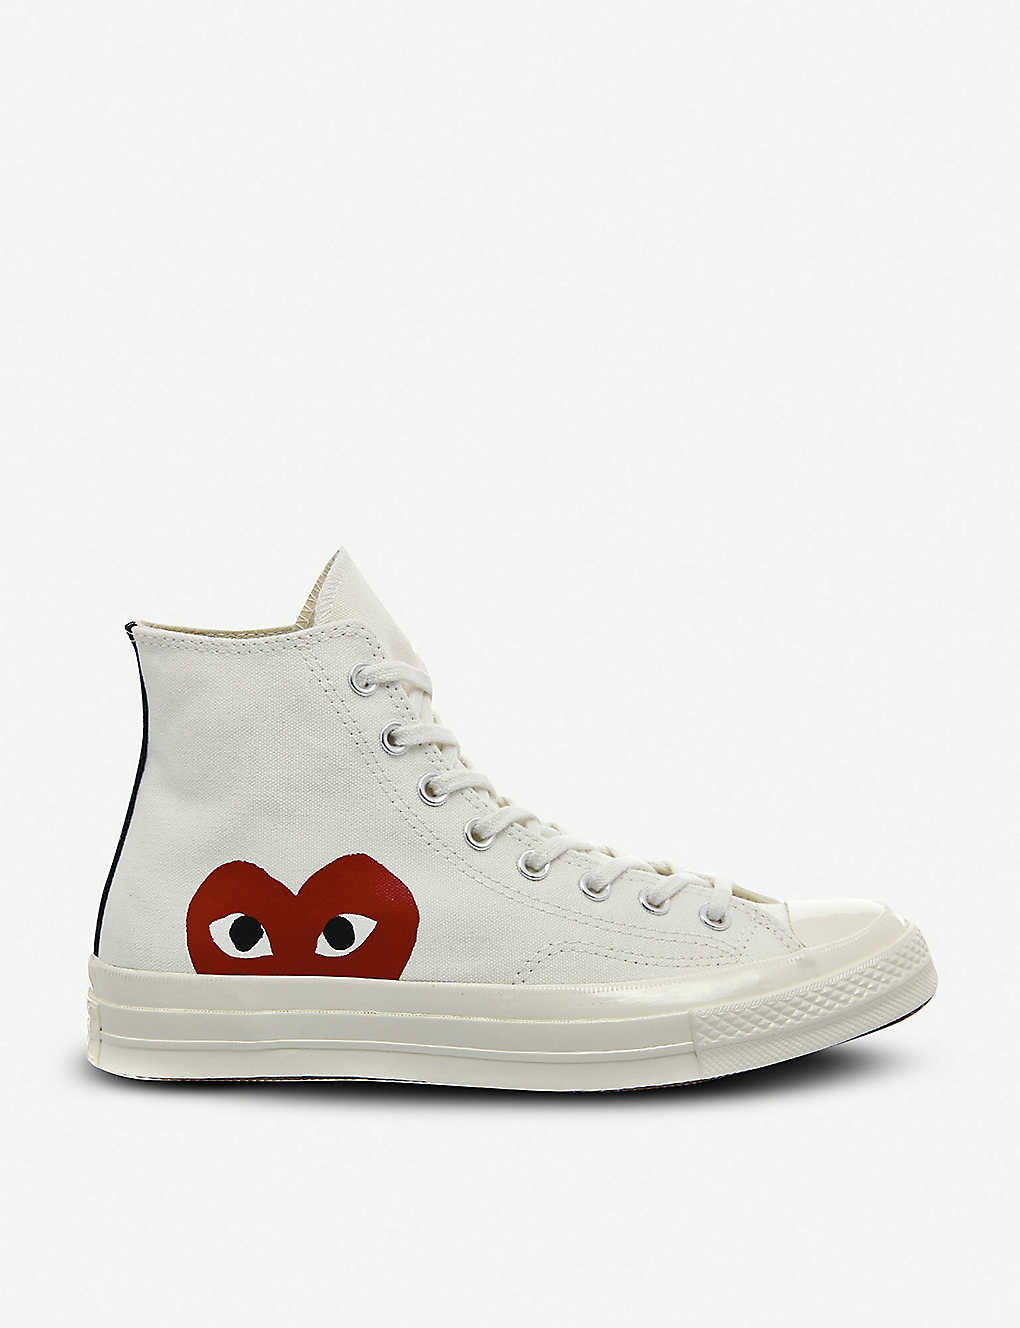 Converse high top 70s x play cdg trainers